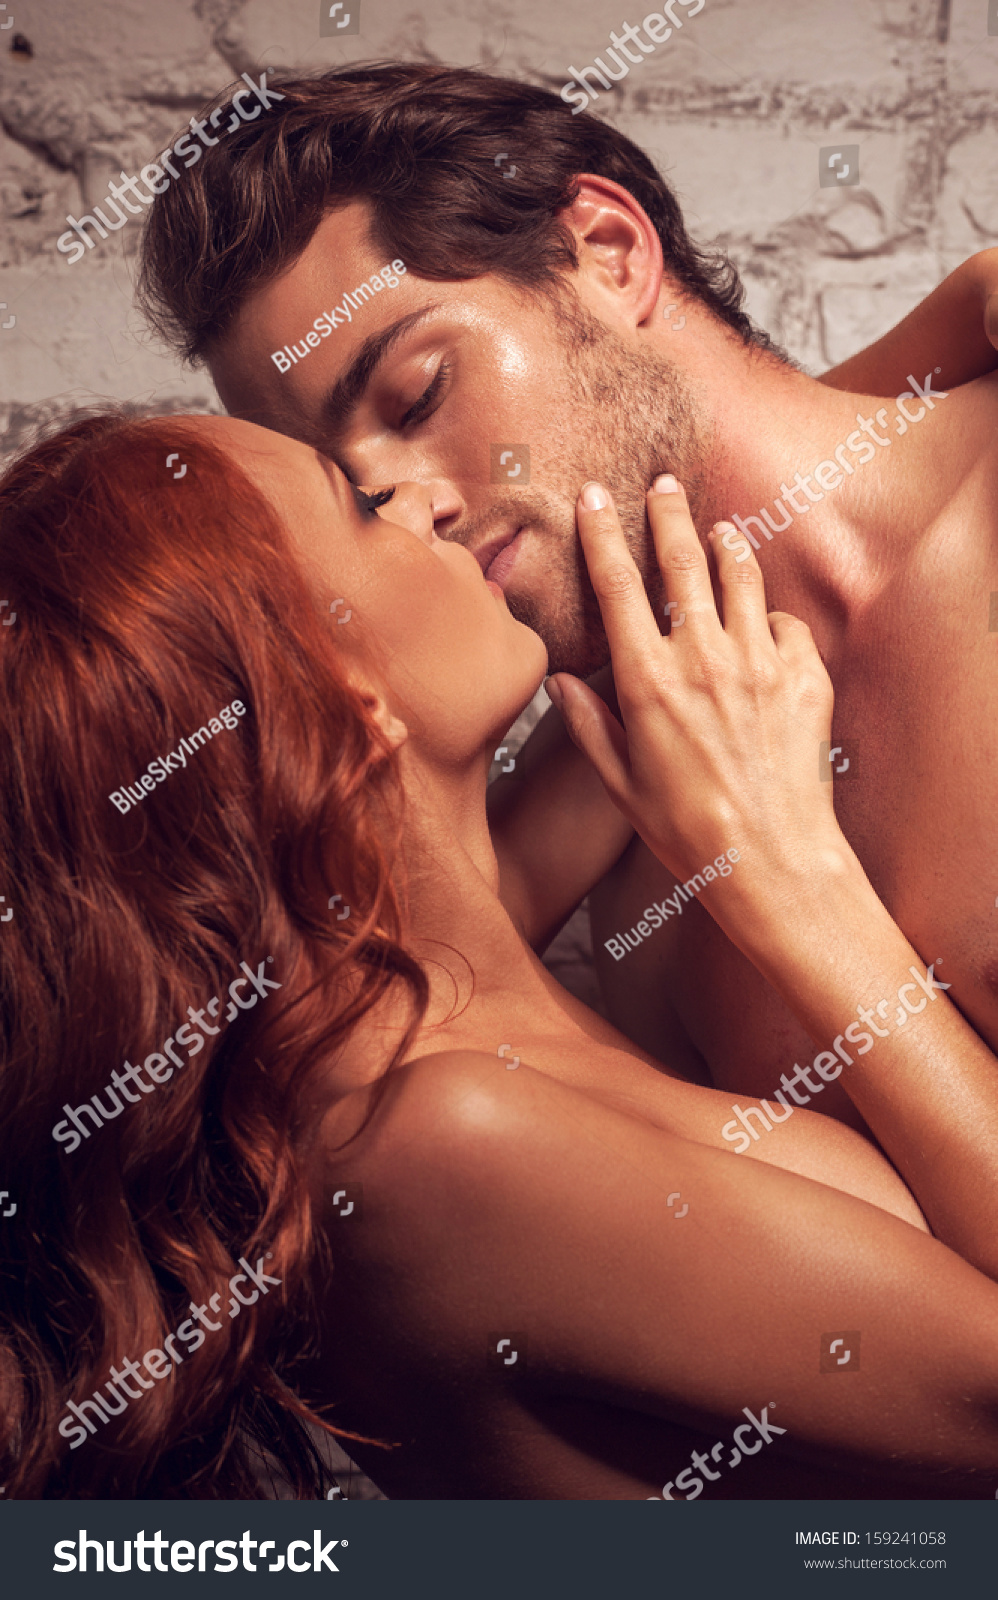 young couples nude